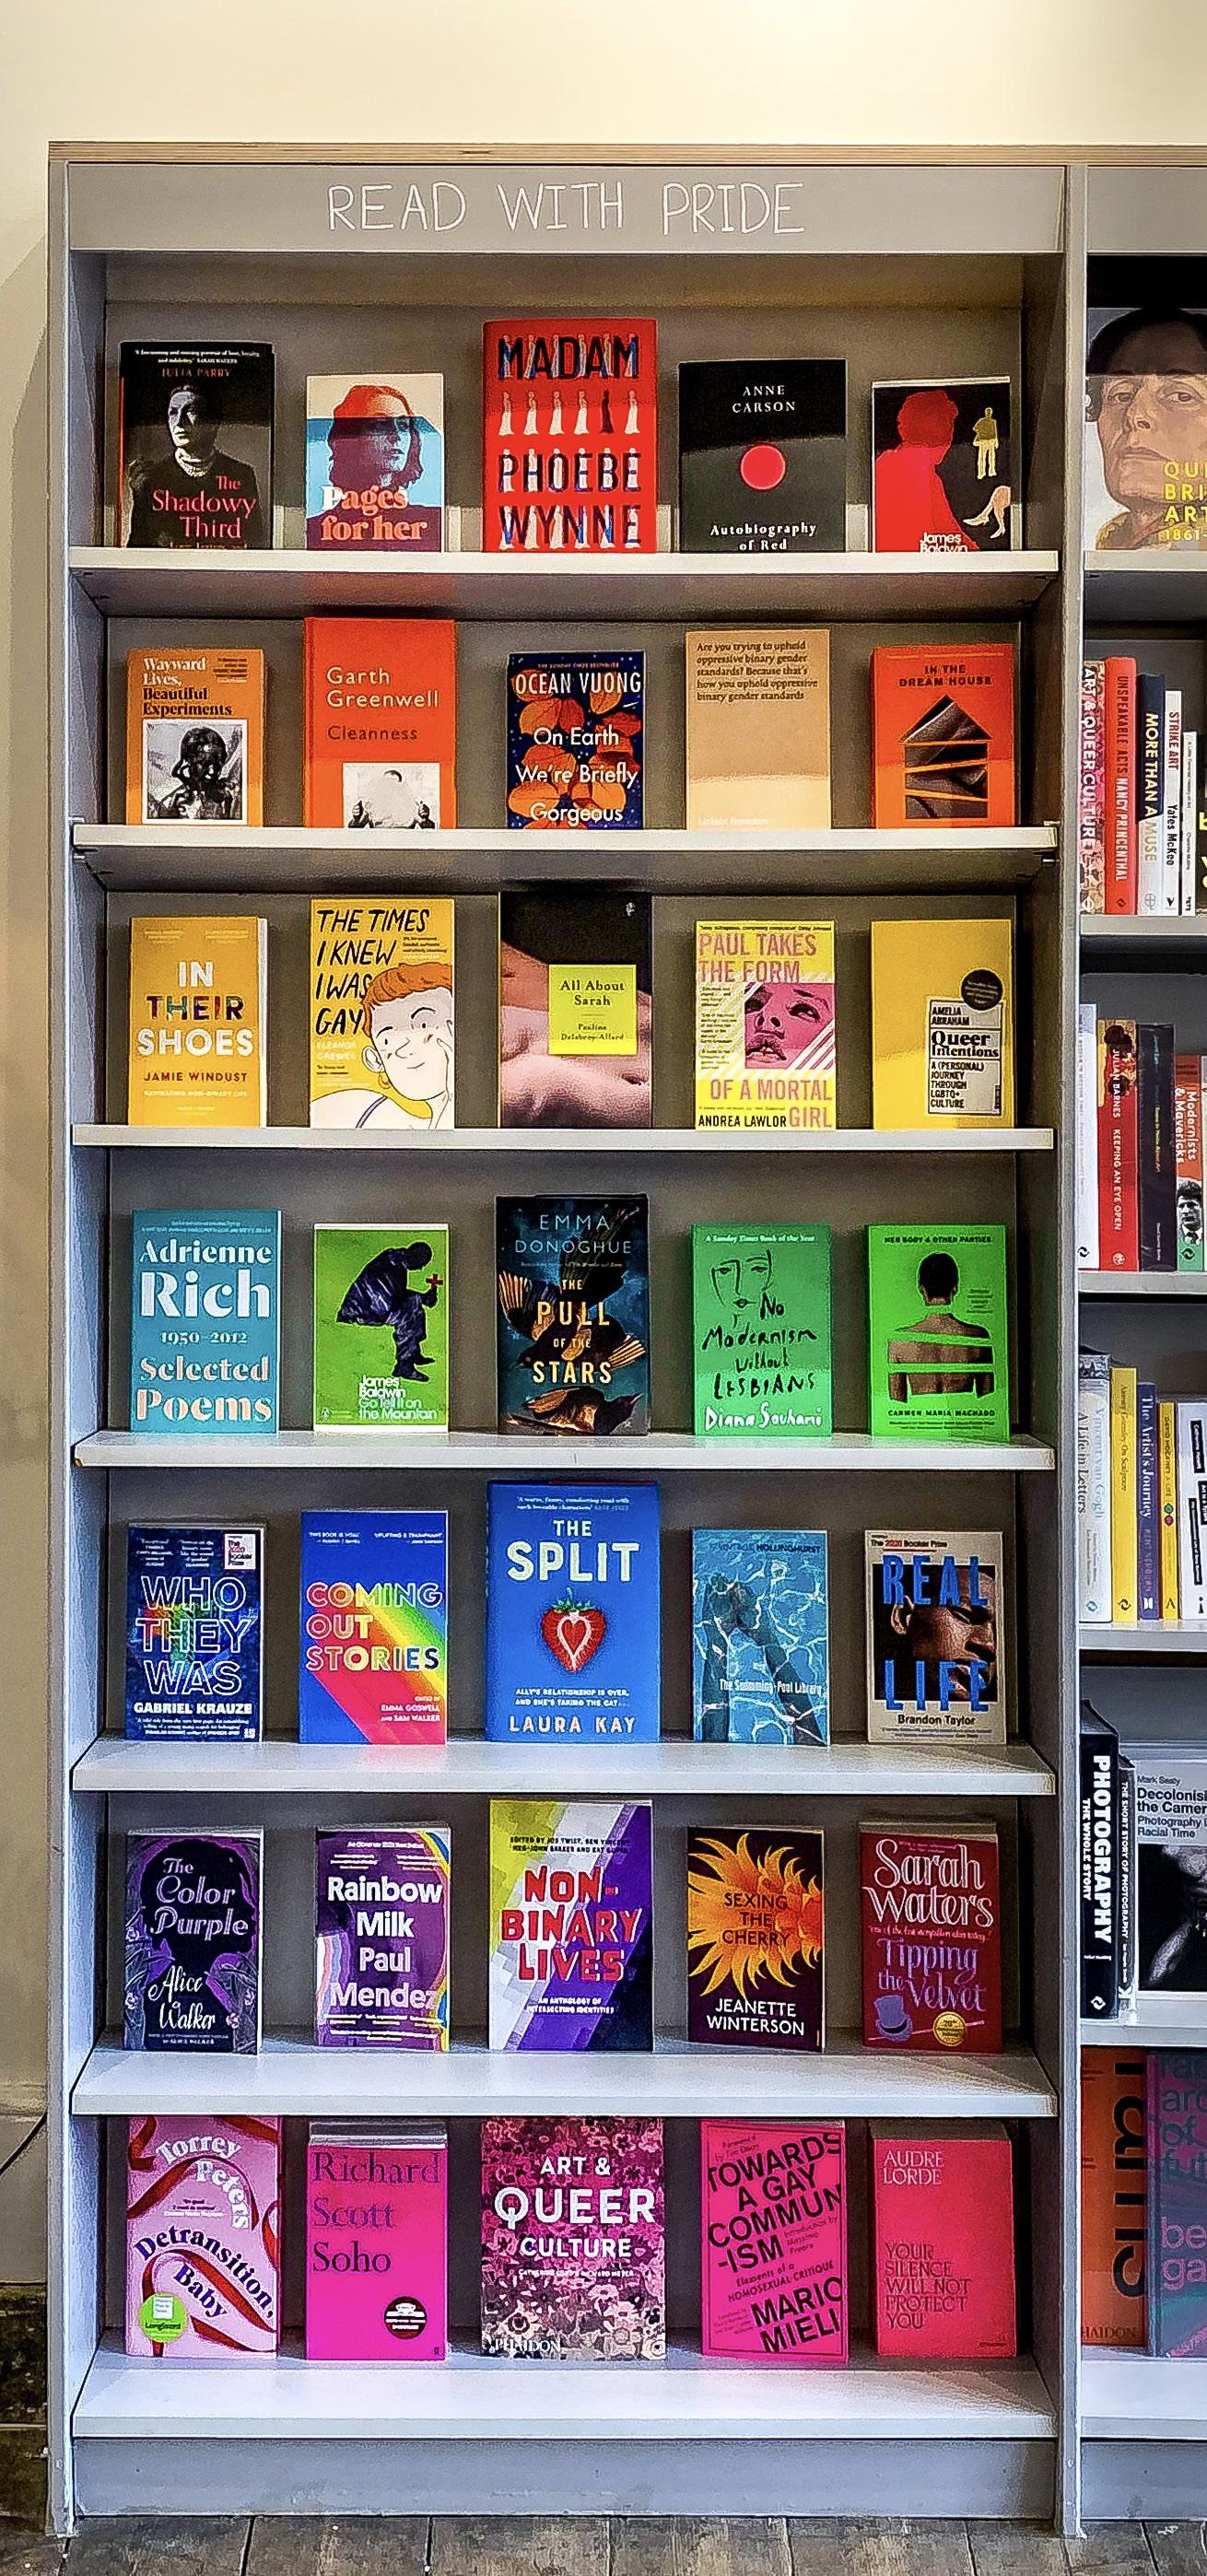 Page 10 of Read with Pride – Harbour Books shares the LGBTQI+ voices at the centre of its shelves